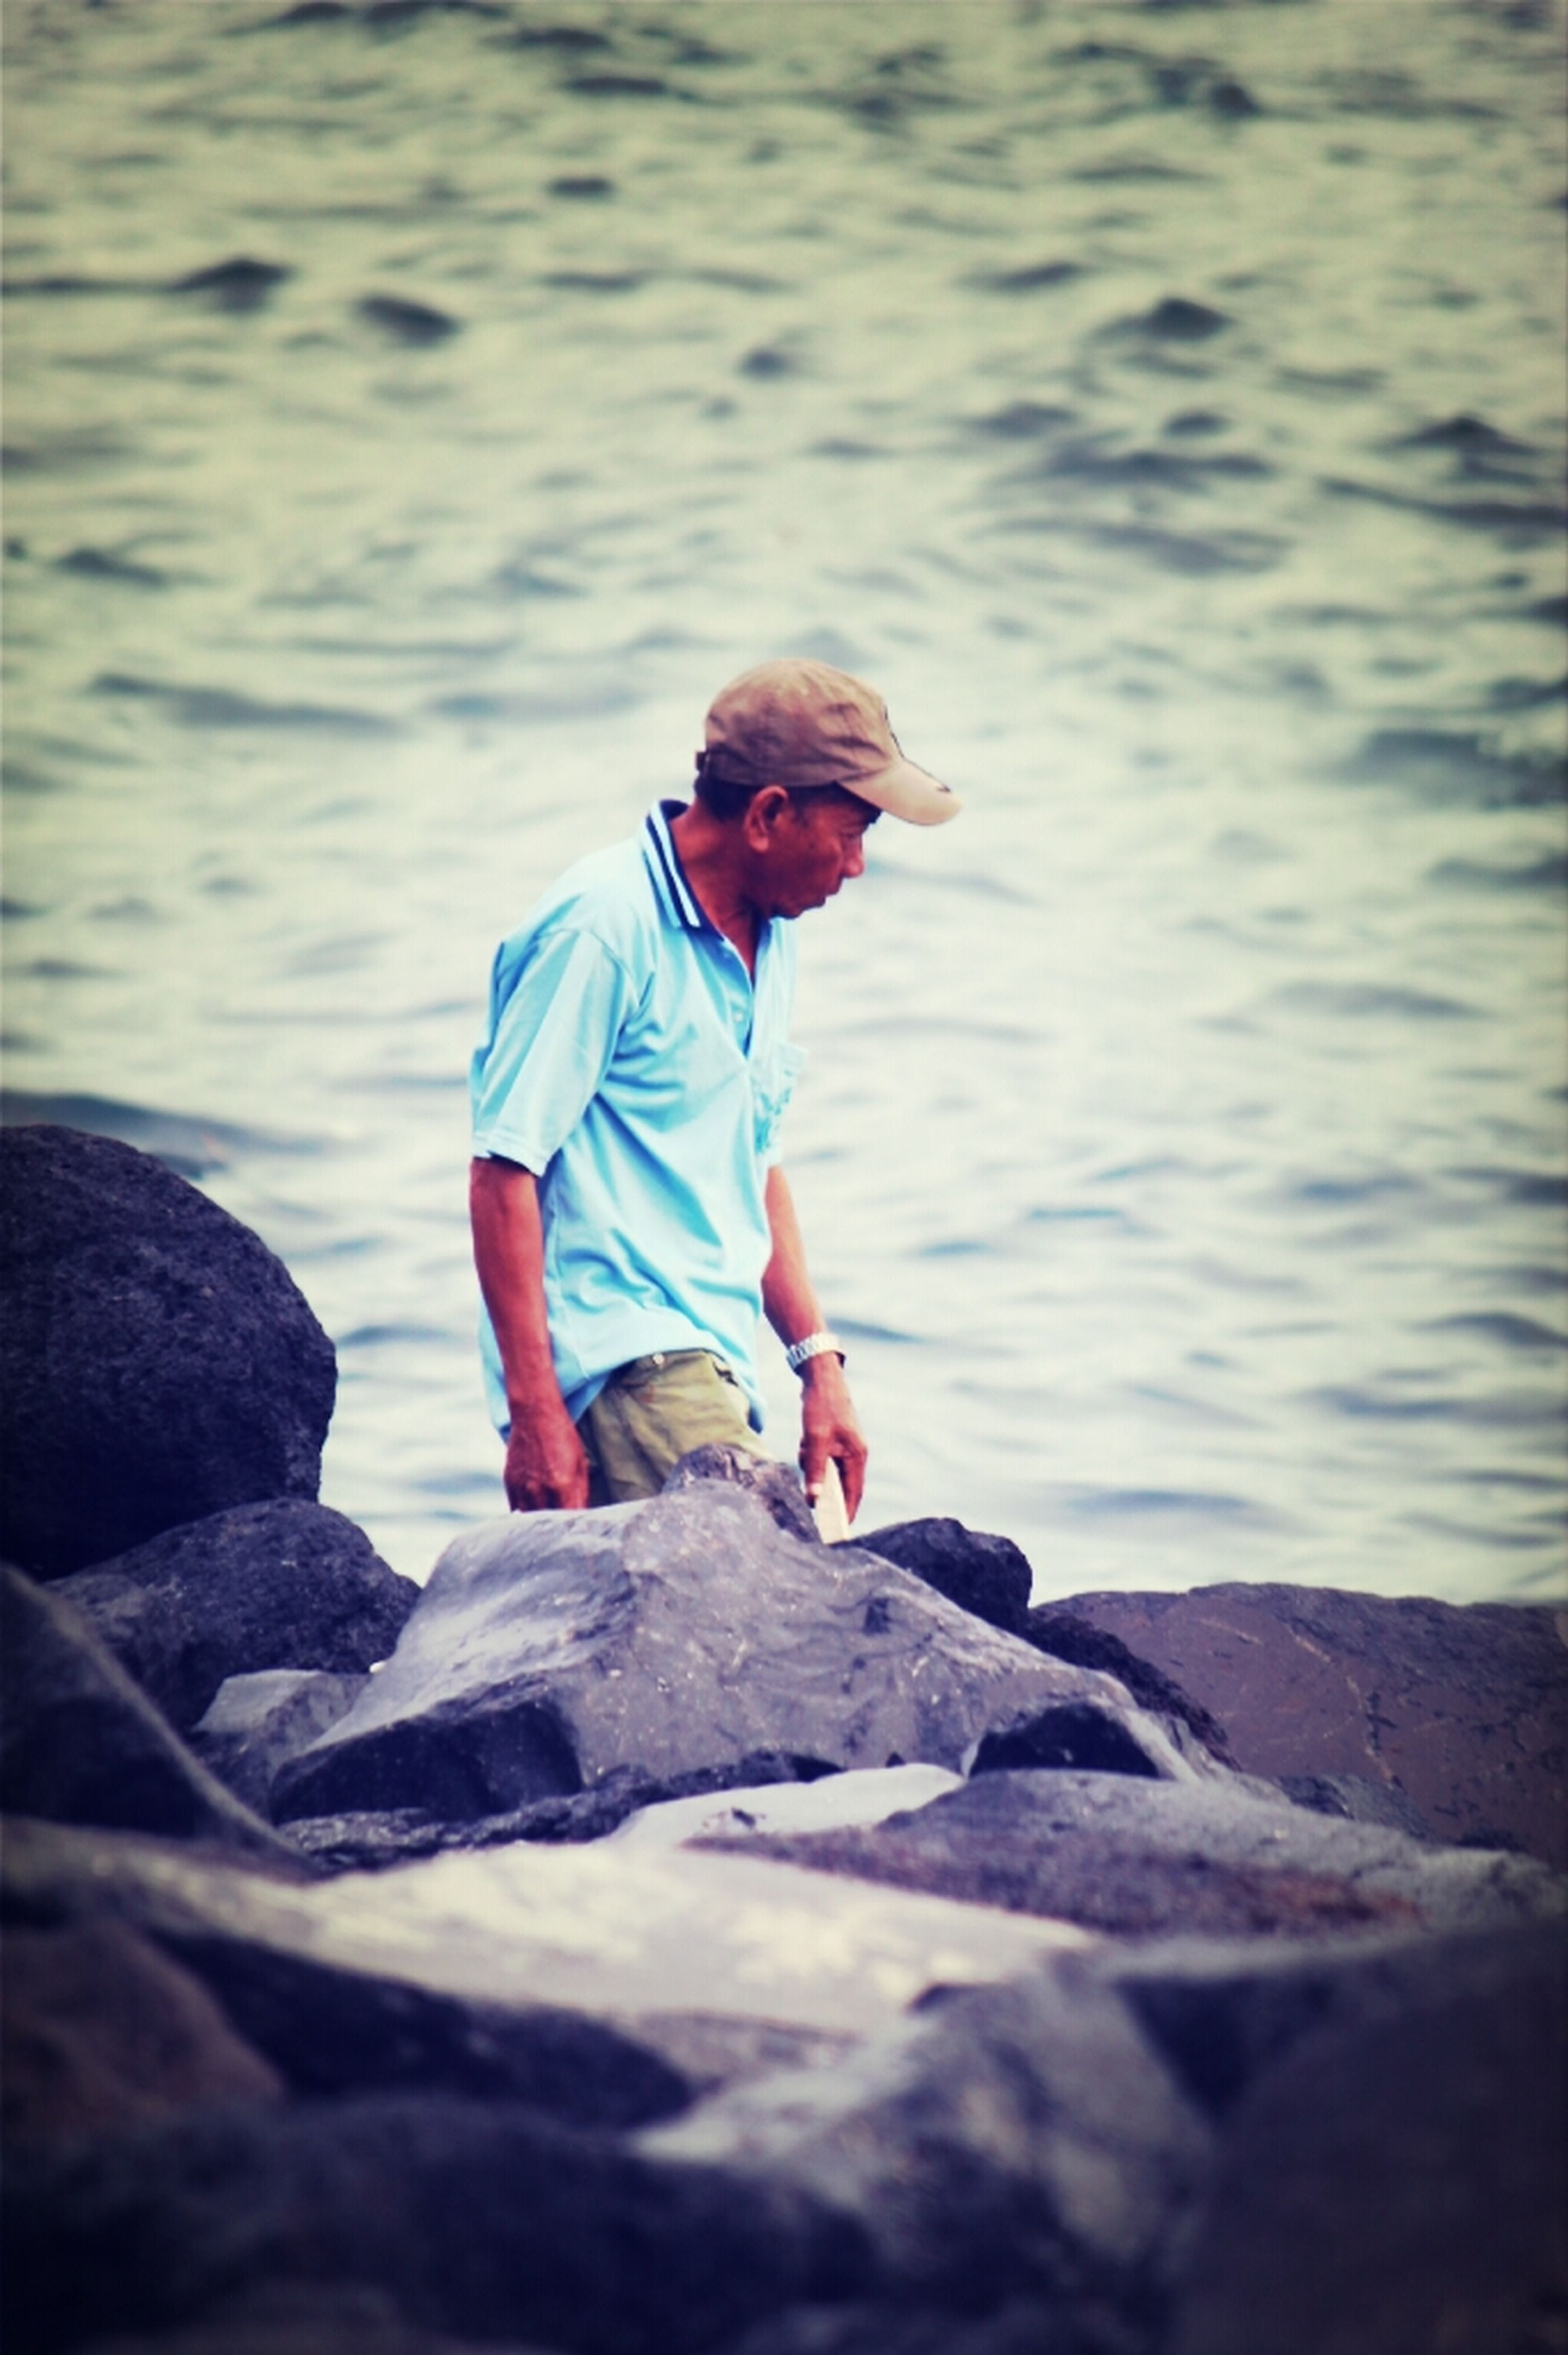 water, lifestyles, leisure activity, full length, rear view, sea, casual clothing, rock - object, beach, childhood, shore, standing, boys, nature, elementary age, vacations, tranquility, focus on foreground